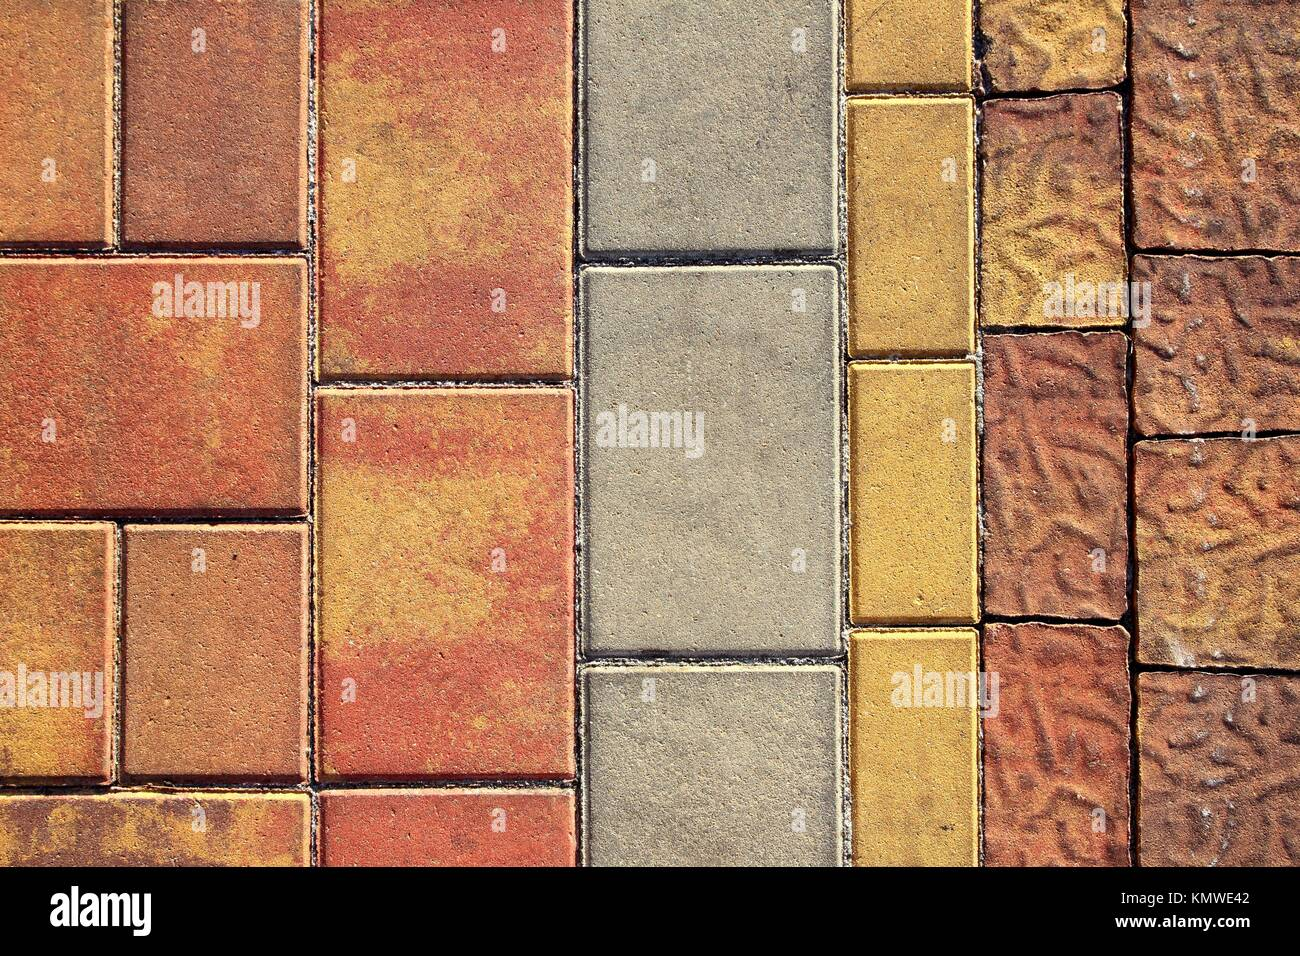 Pavement Flooring Outdoor Texture Colorful Cement Based